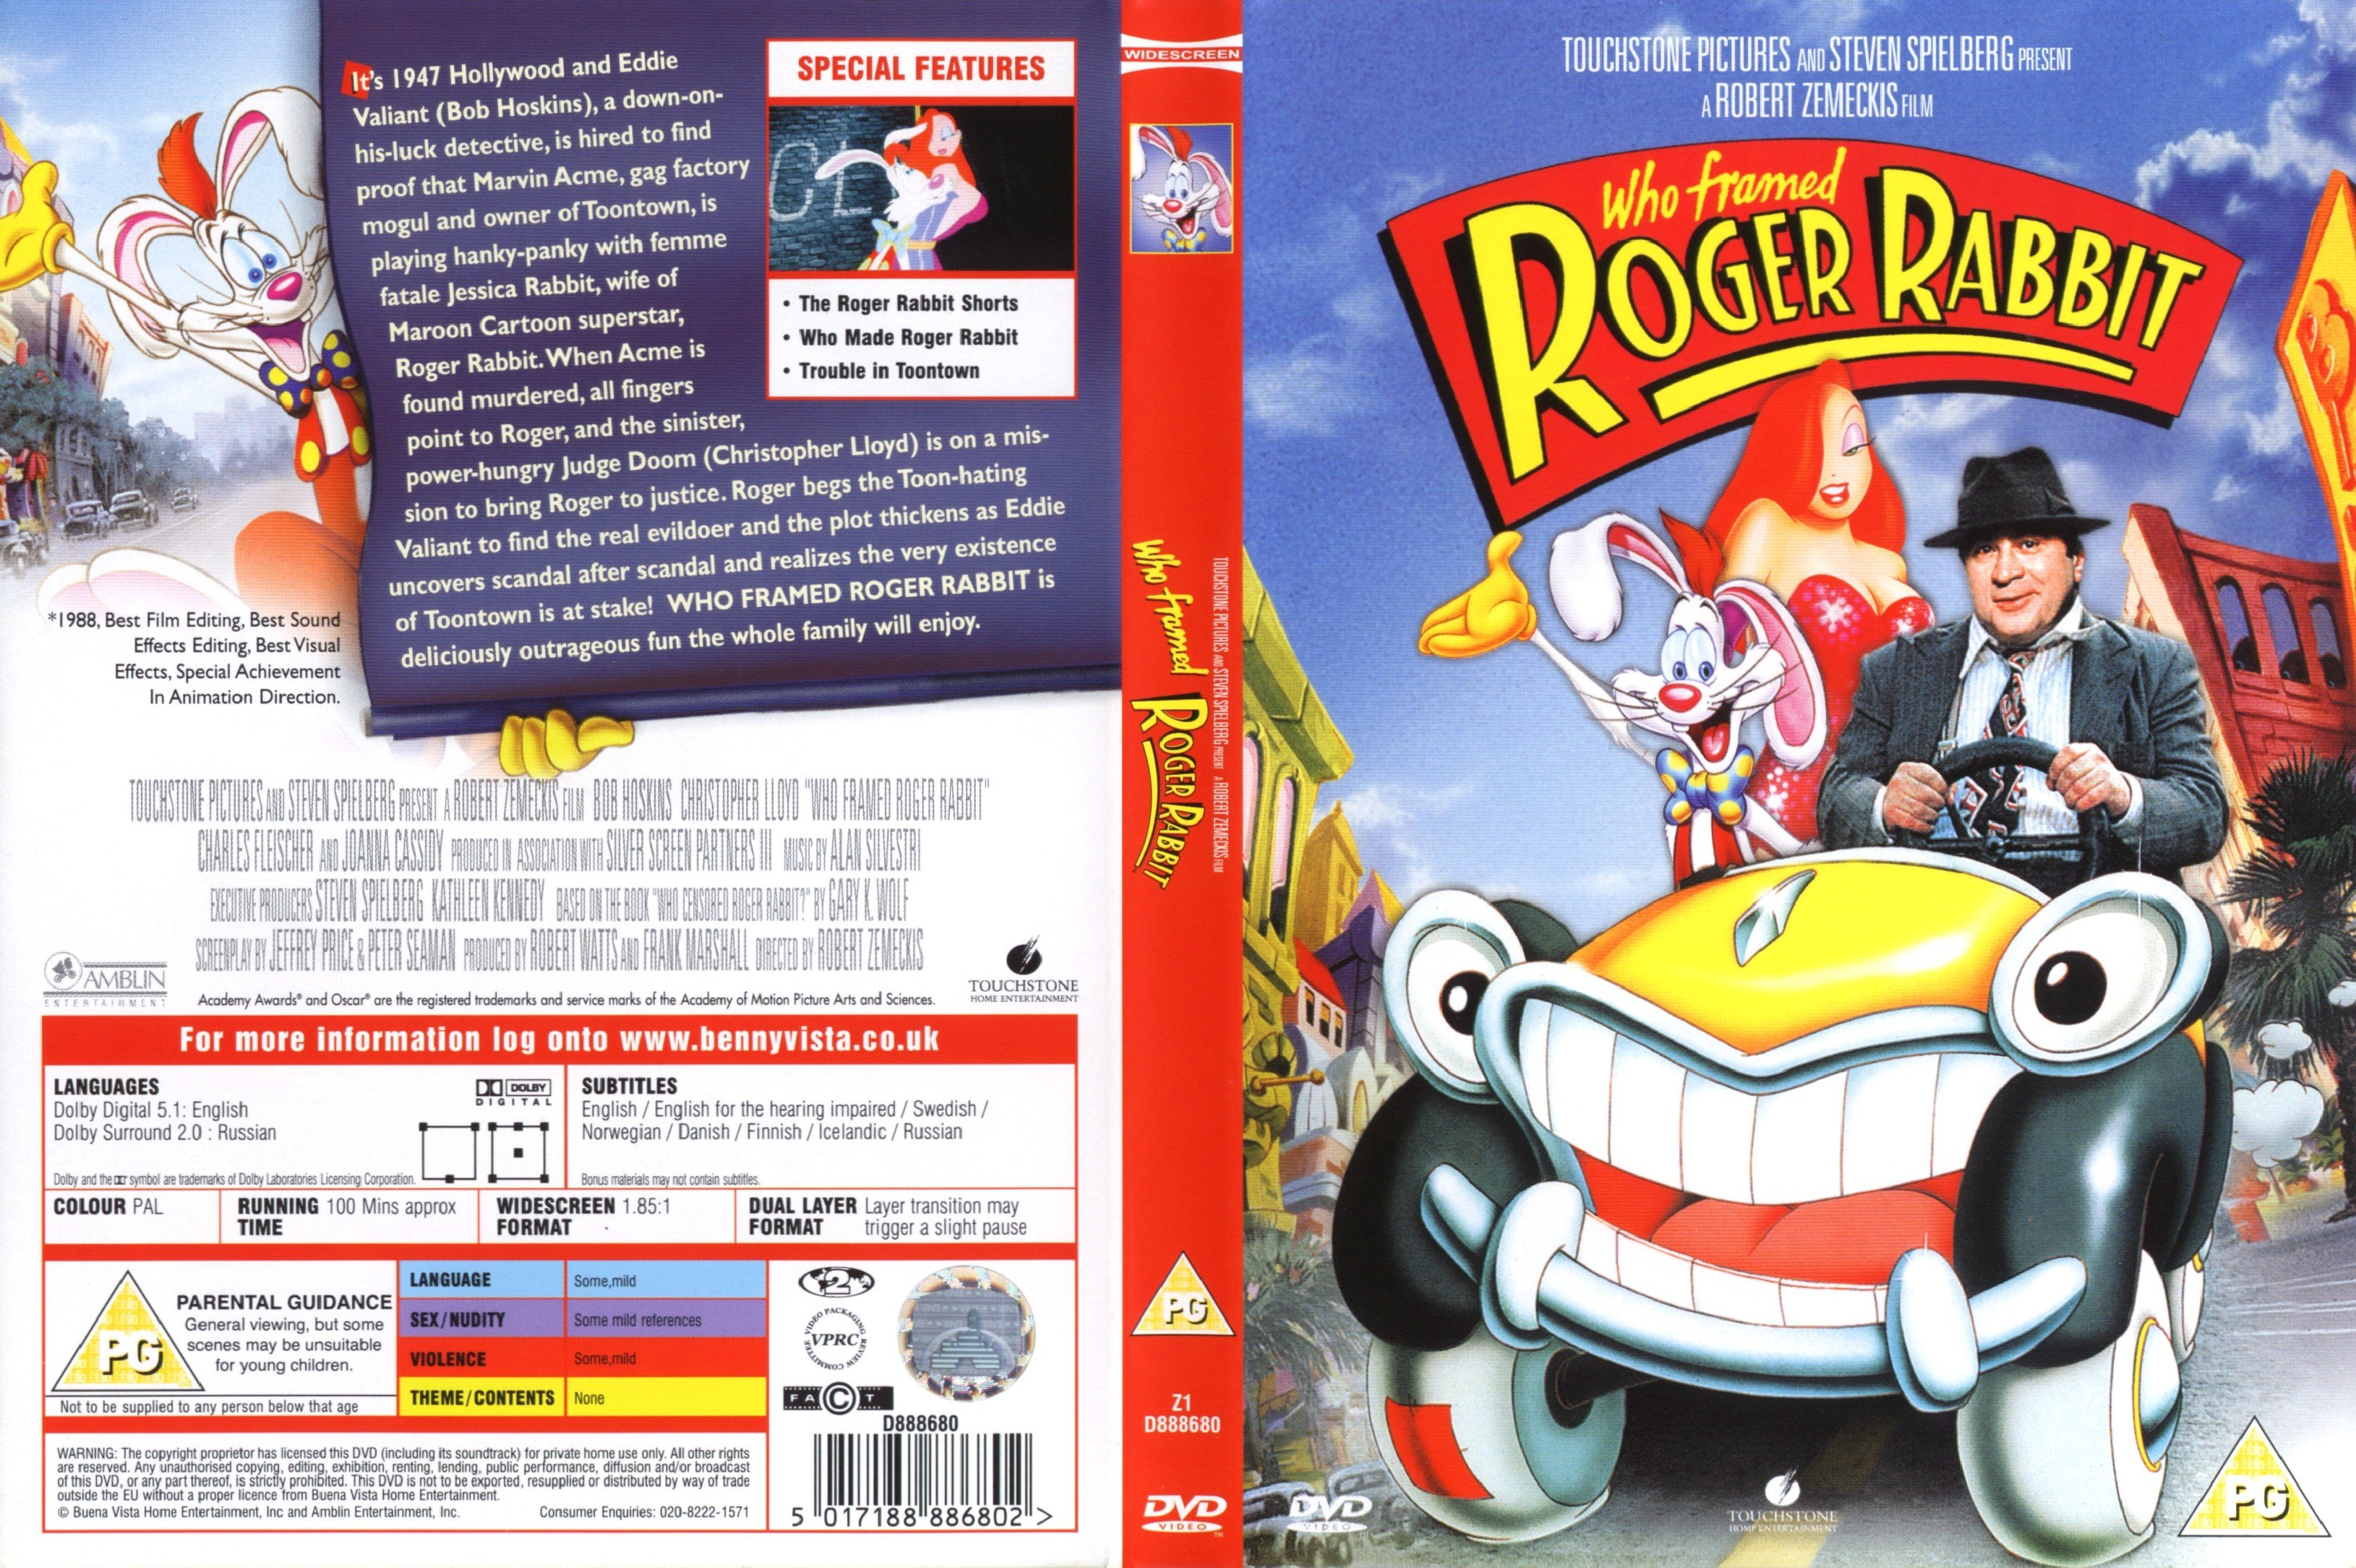 Movie - Who Framed Roger Rabbit (1988) - Animation, Comedy, Crime ...